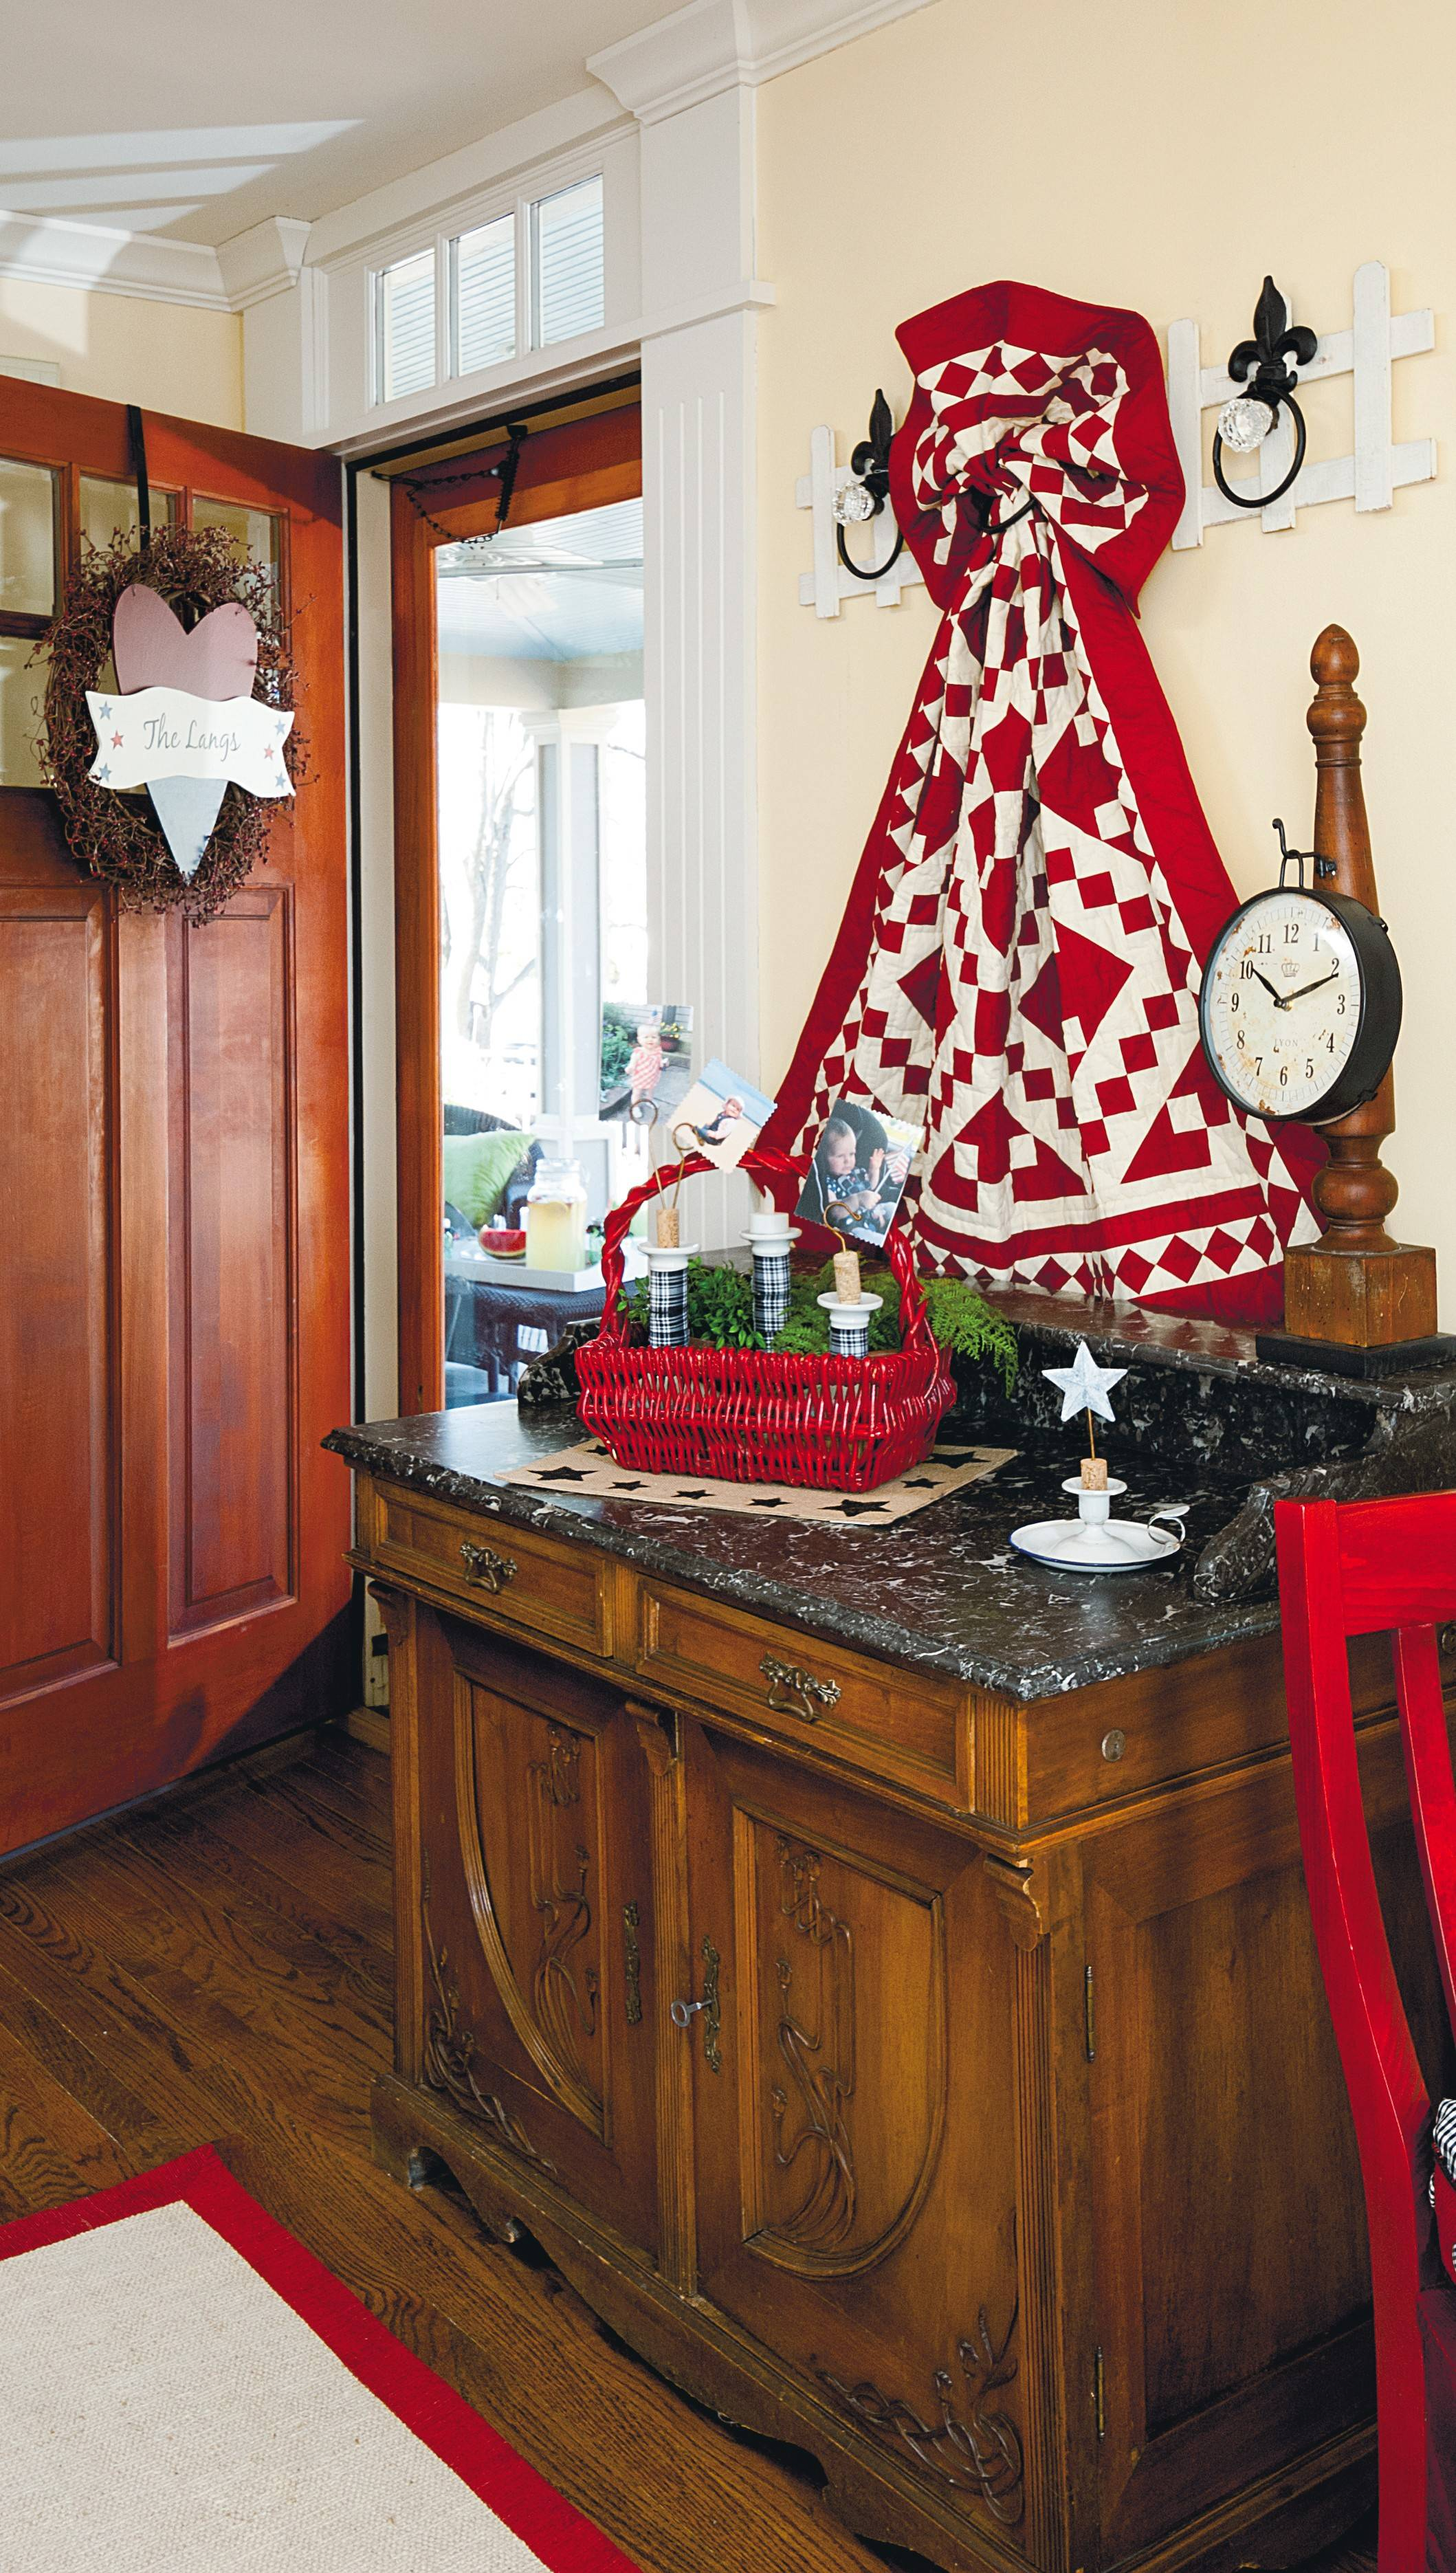 Announce your love of country to anyone who enters with Americana front-door decor, such as this berry wreath featuring a painted heart.